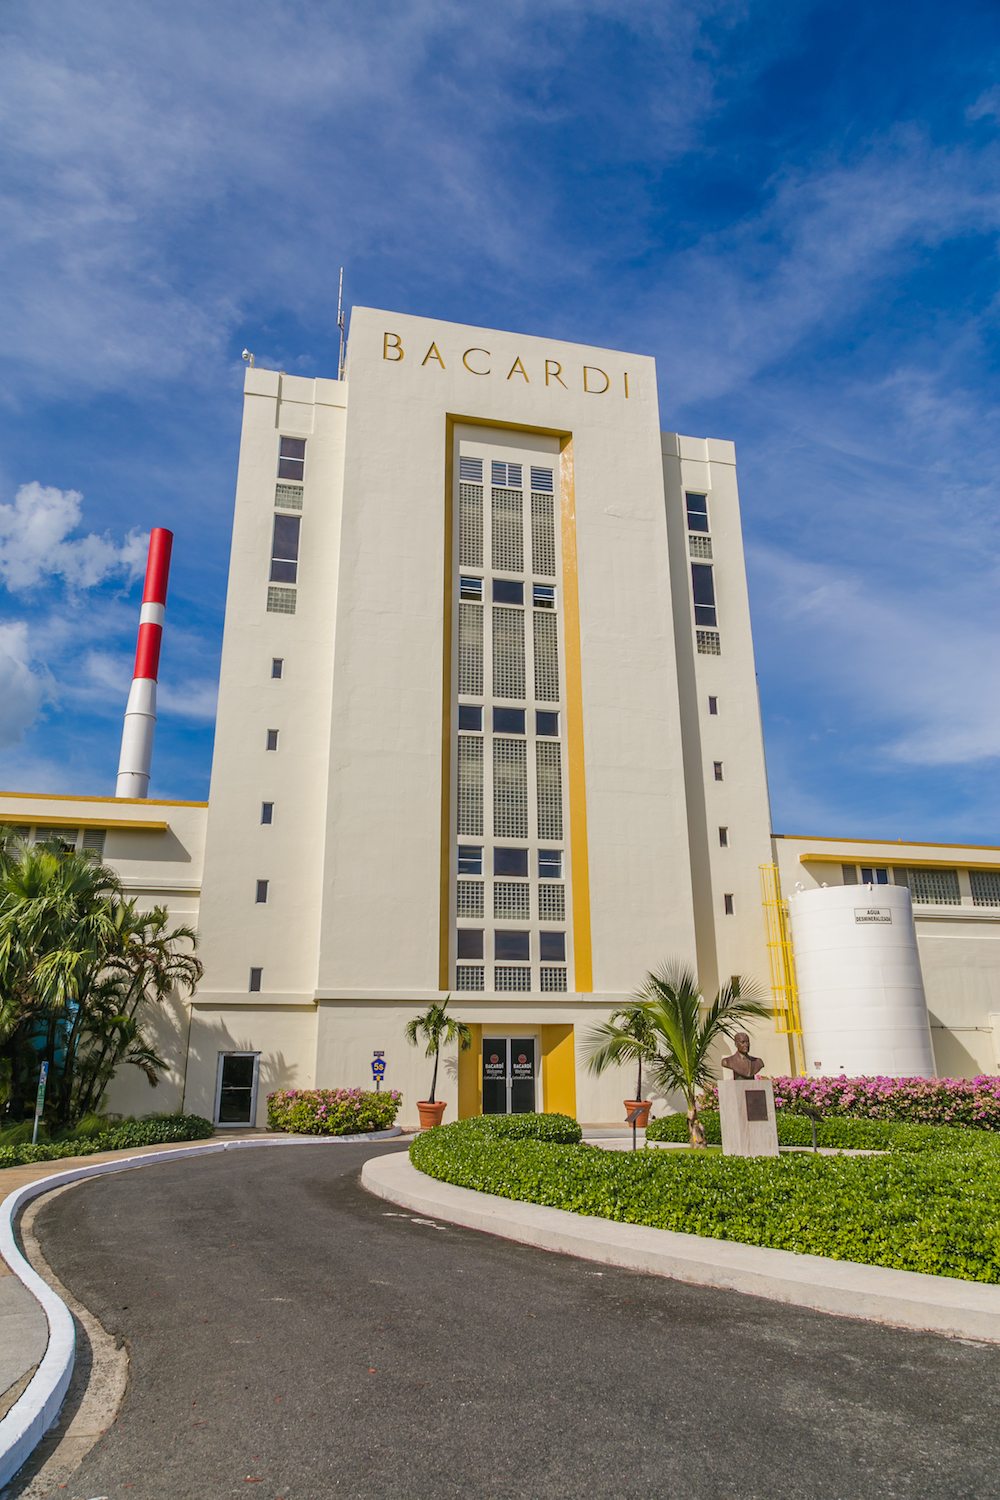 The Cathedral of Rum at Bacardi